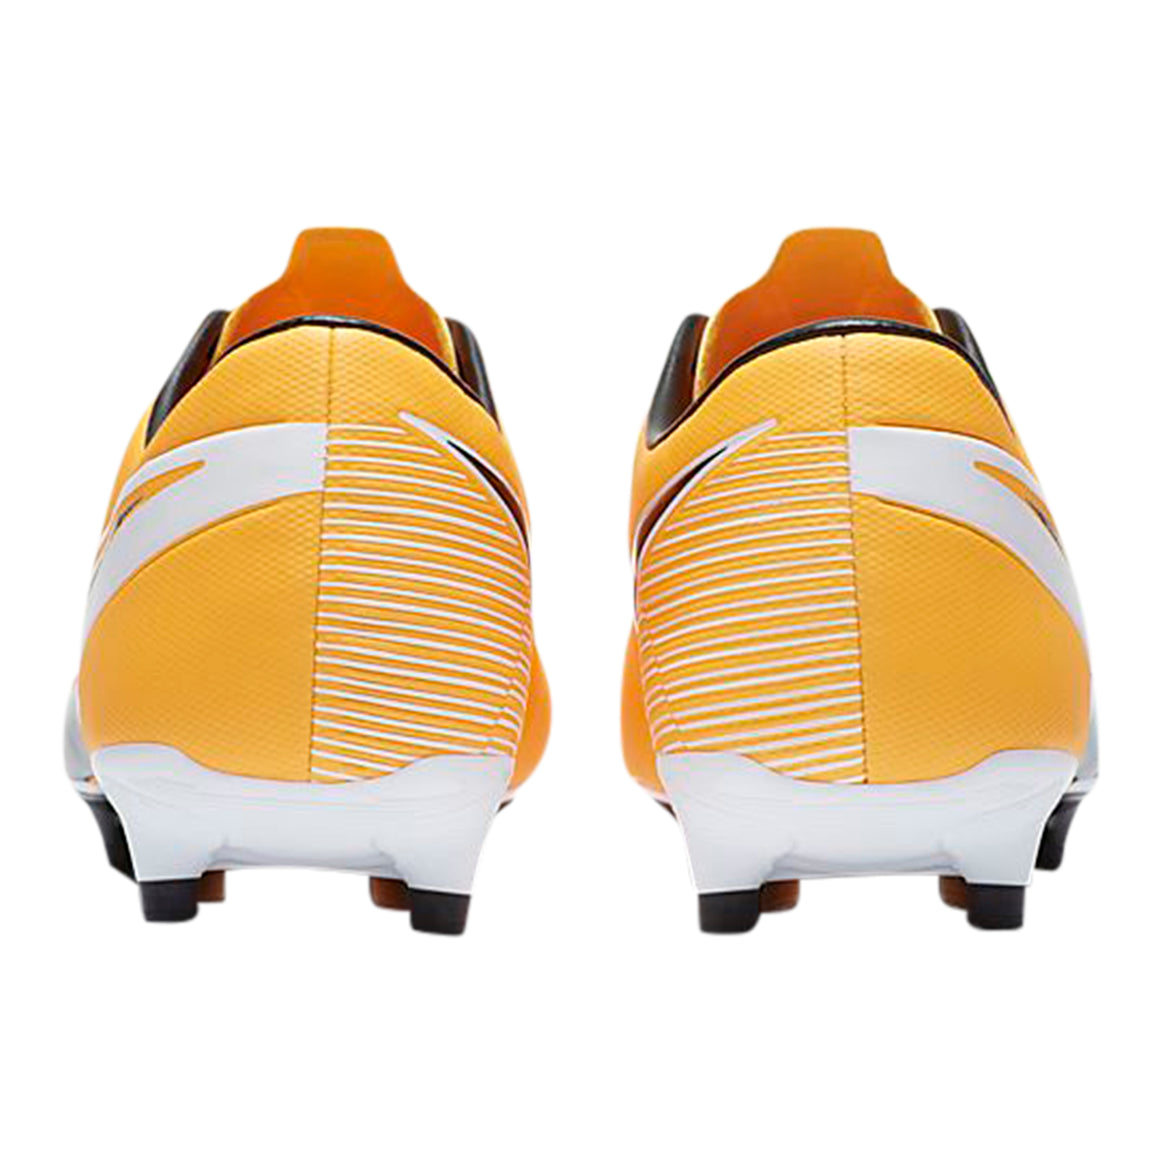 Mercurial Vapor 13 Academy MG for Men in Laser Orange/Black-White